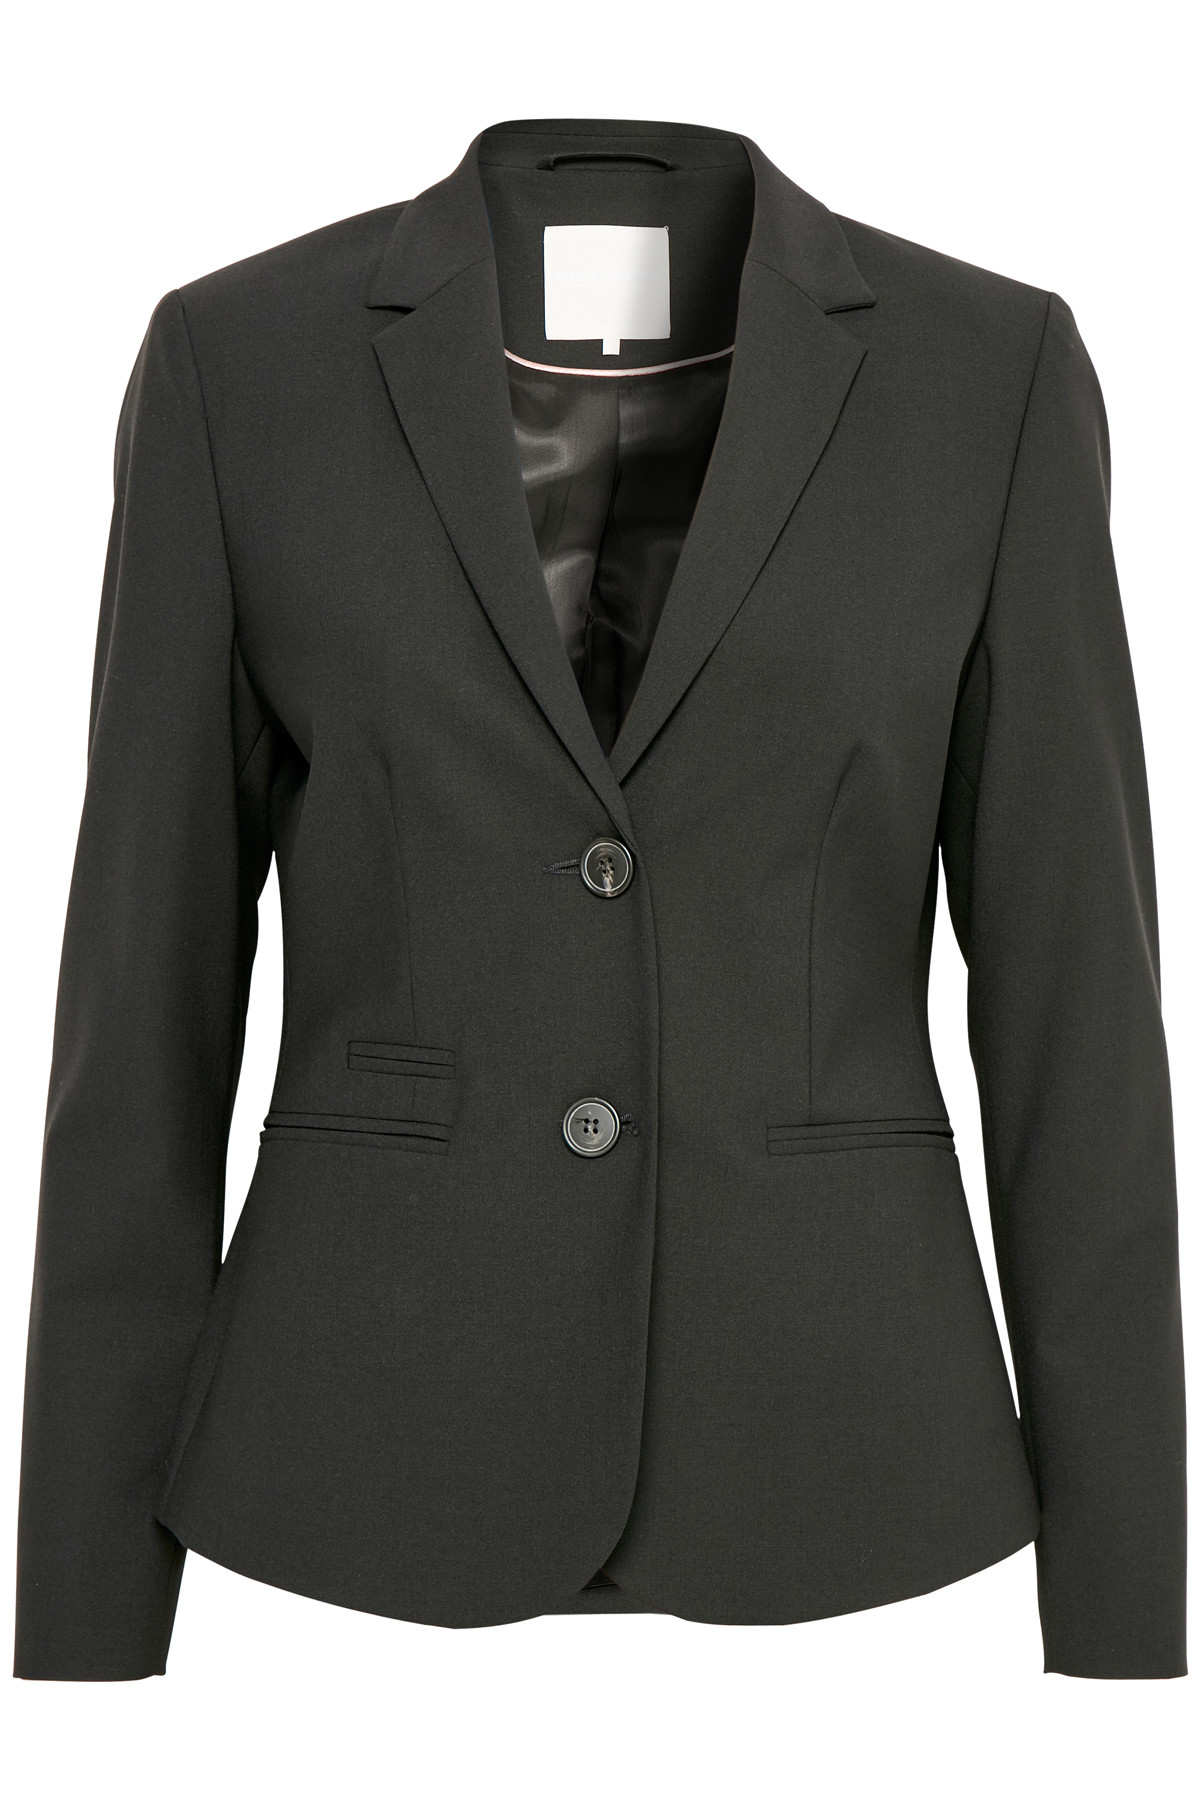 Image of   KAREN BY SIMONSEN SYDNEY BLAZER 10102001 (Black 40999, 34)